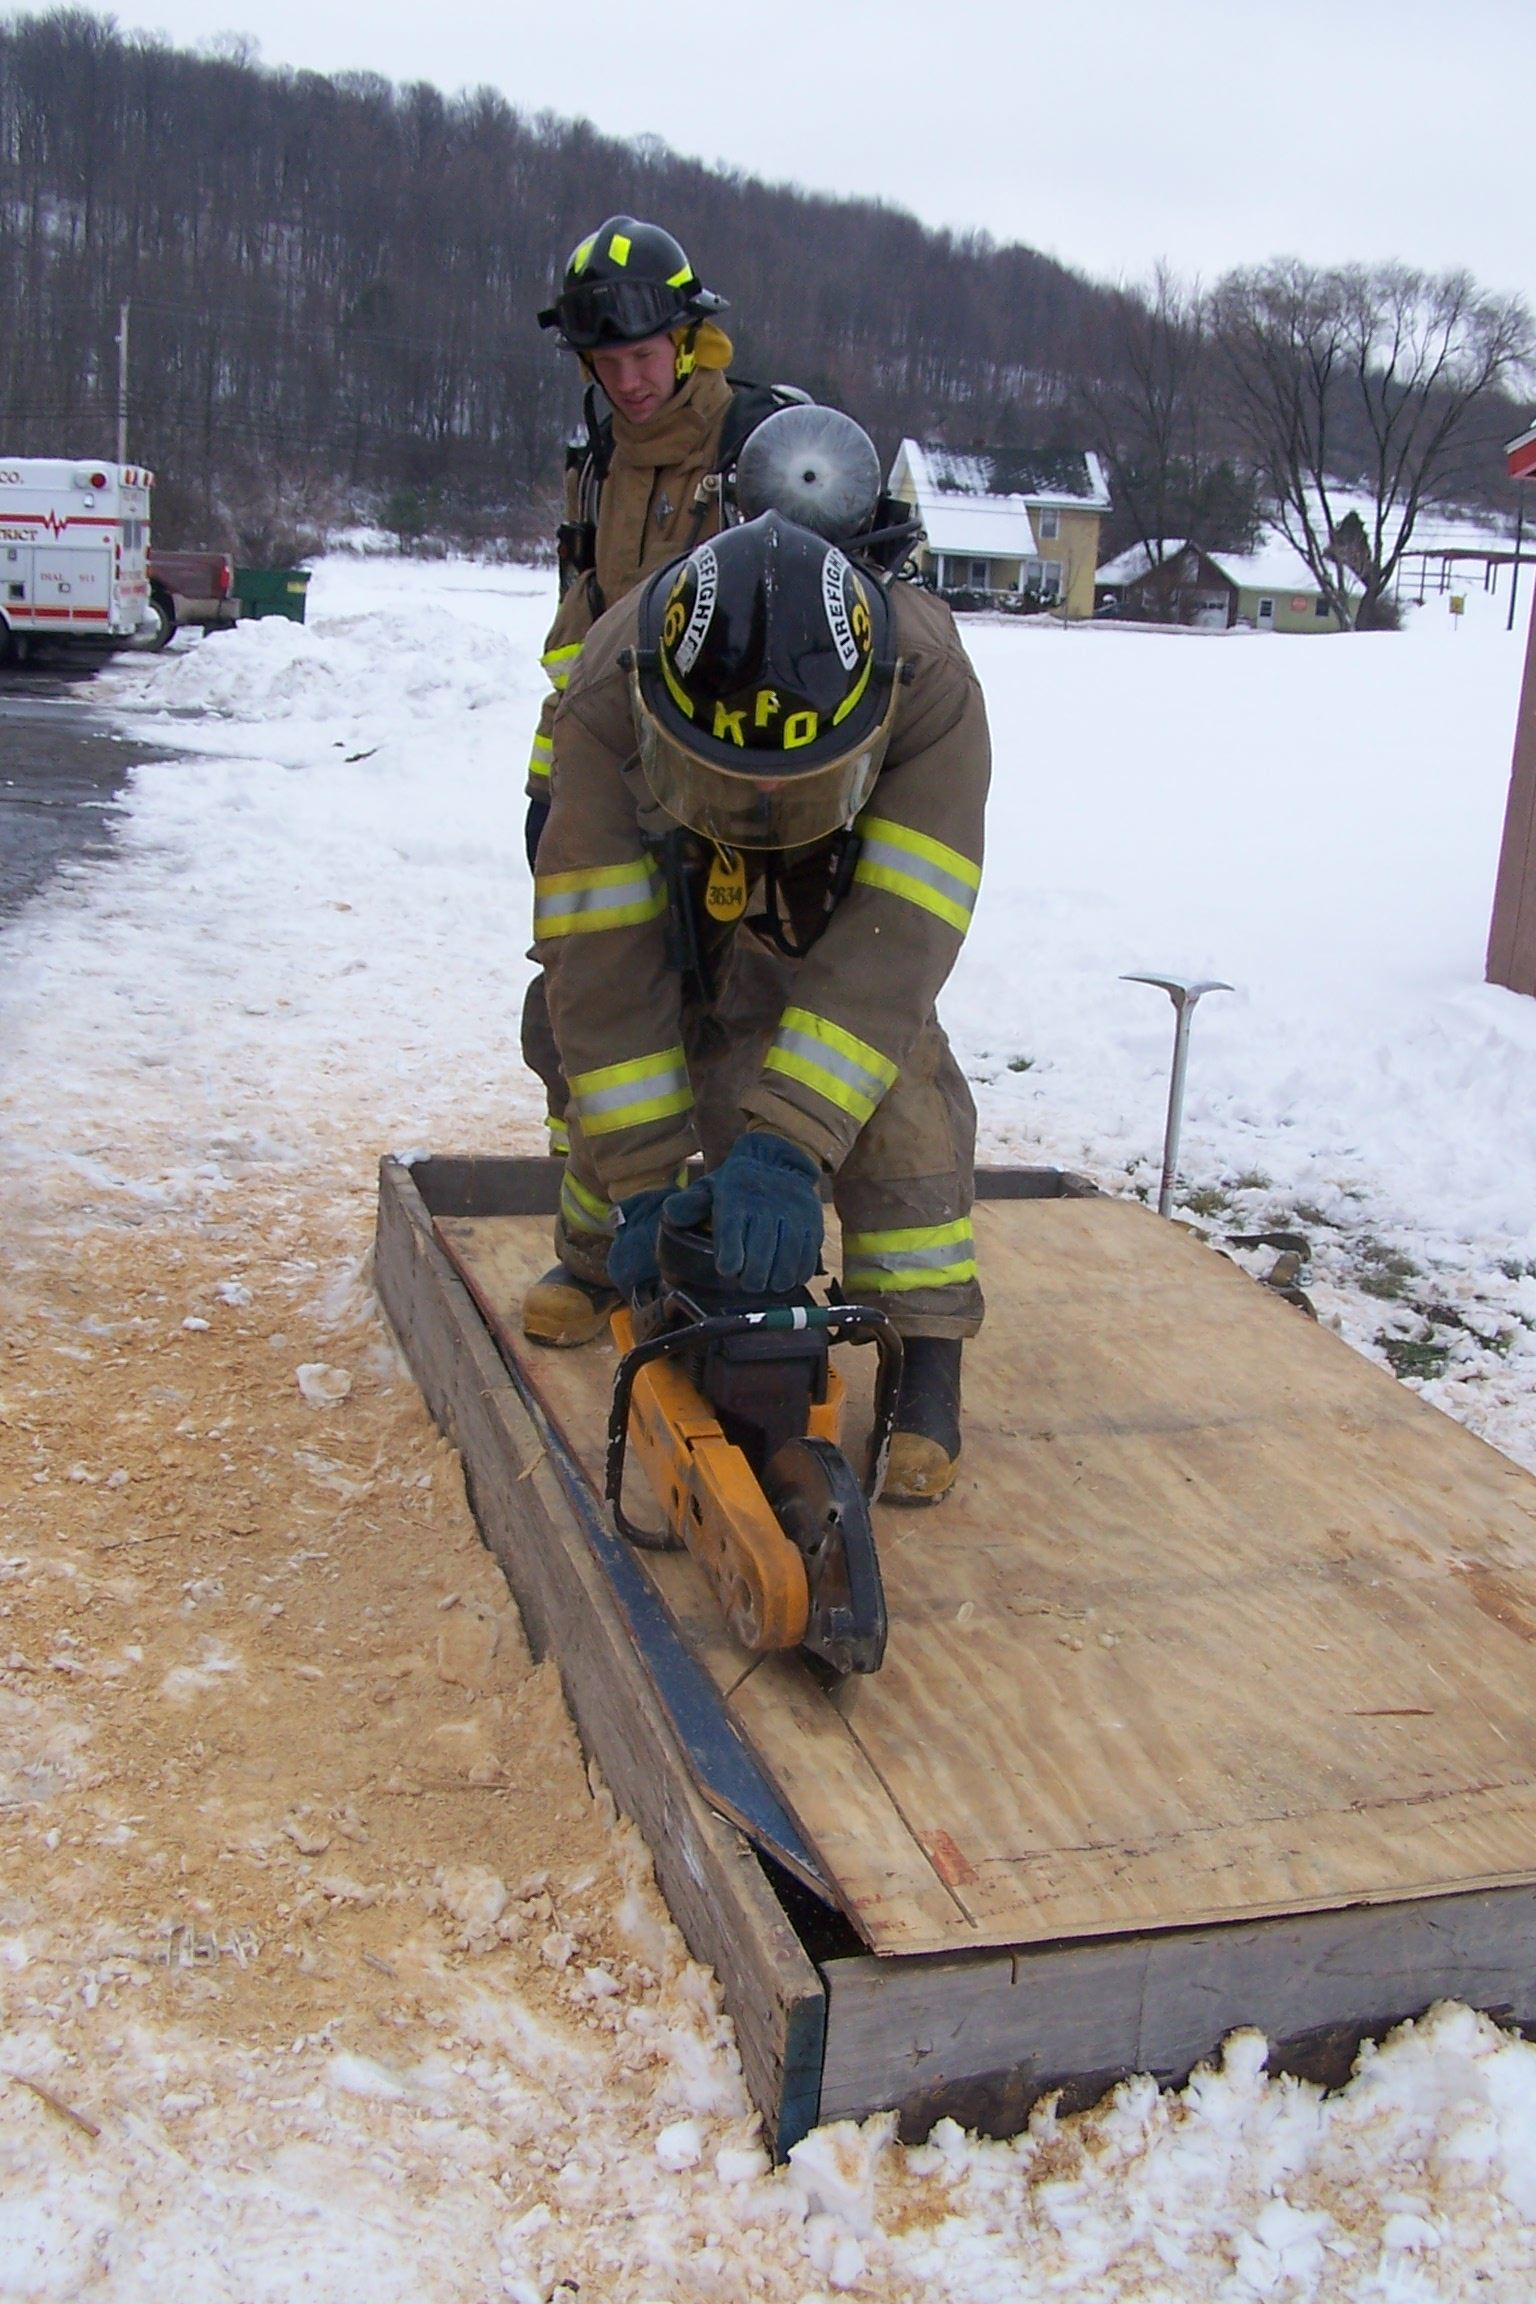 A firefighter practices cutting a wooden roof with a powersaw while another firefighter observes behind him.